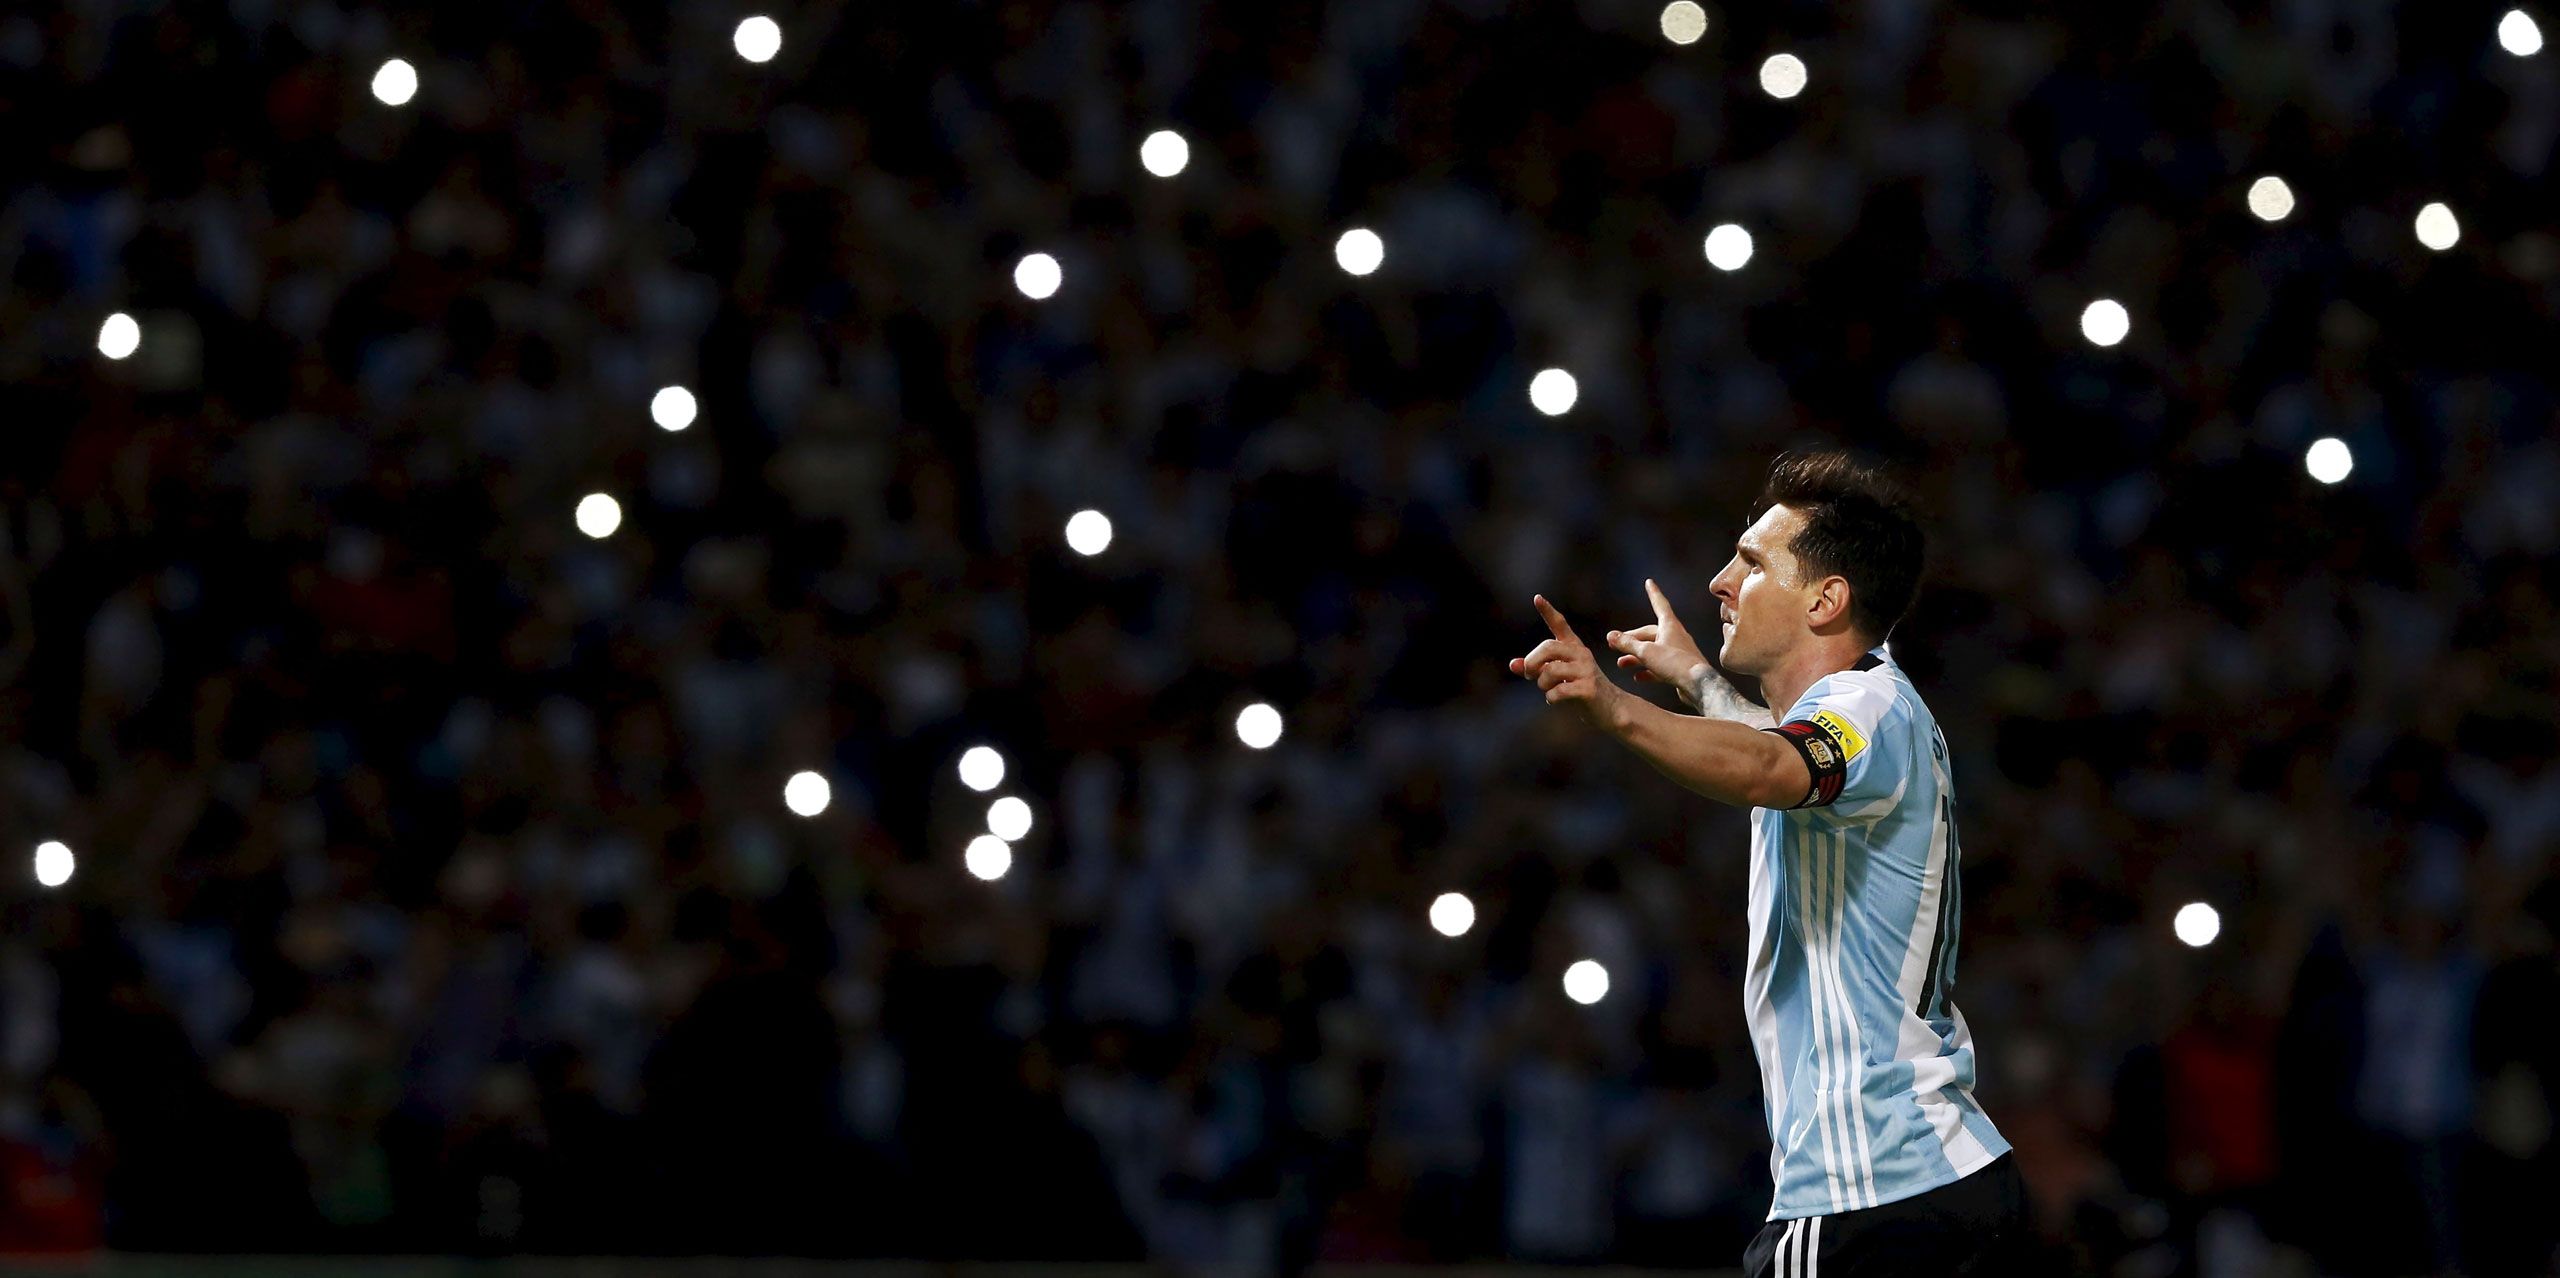 Messi celebrates after scoring a goal for Argentina in a March29 World Cup qualifying match against Bolivia